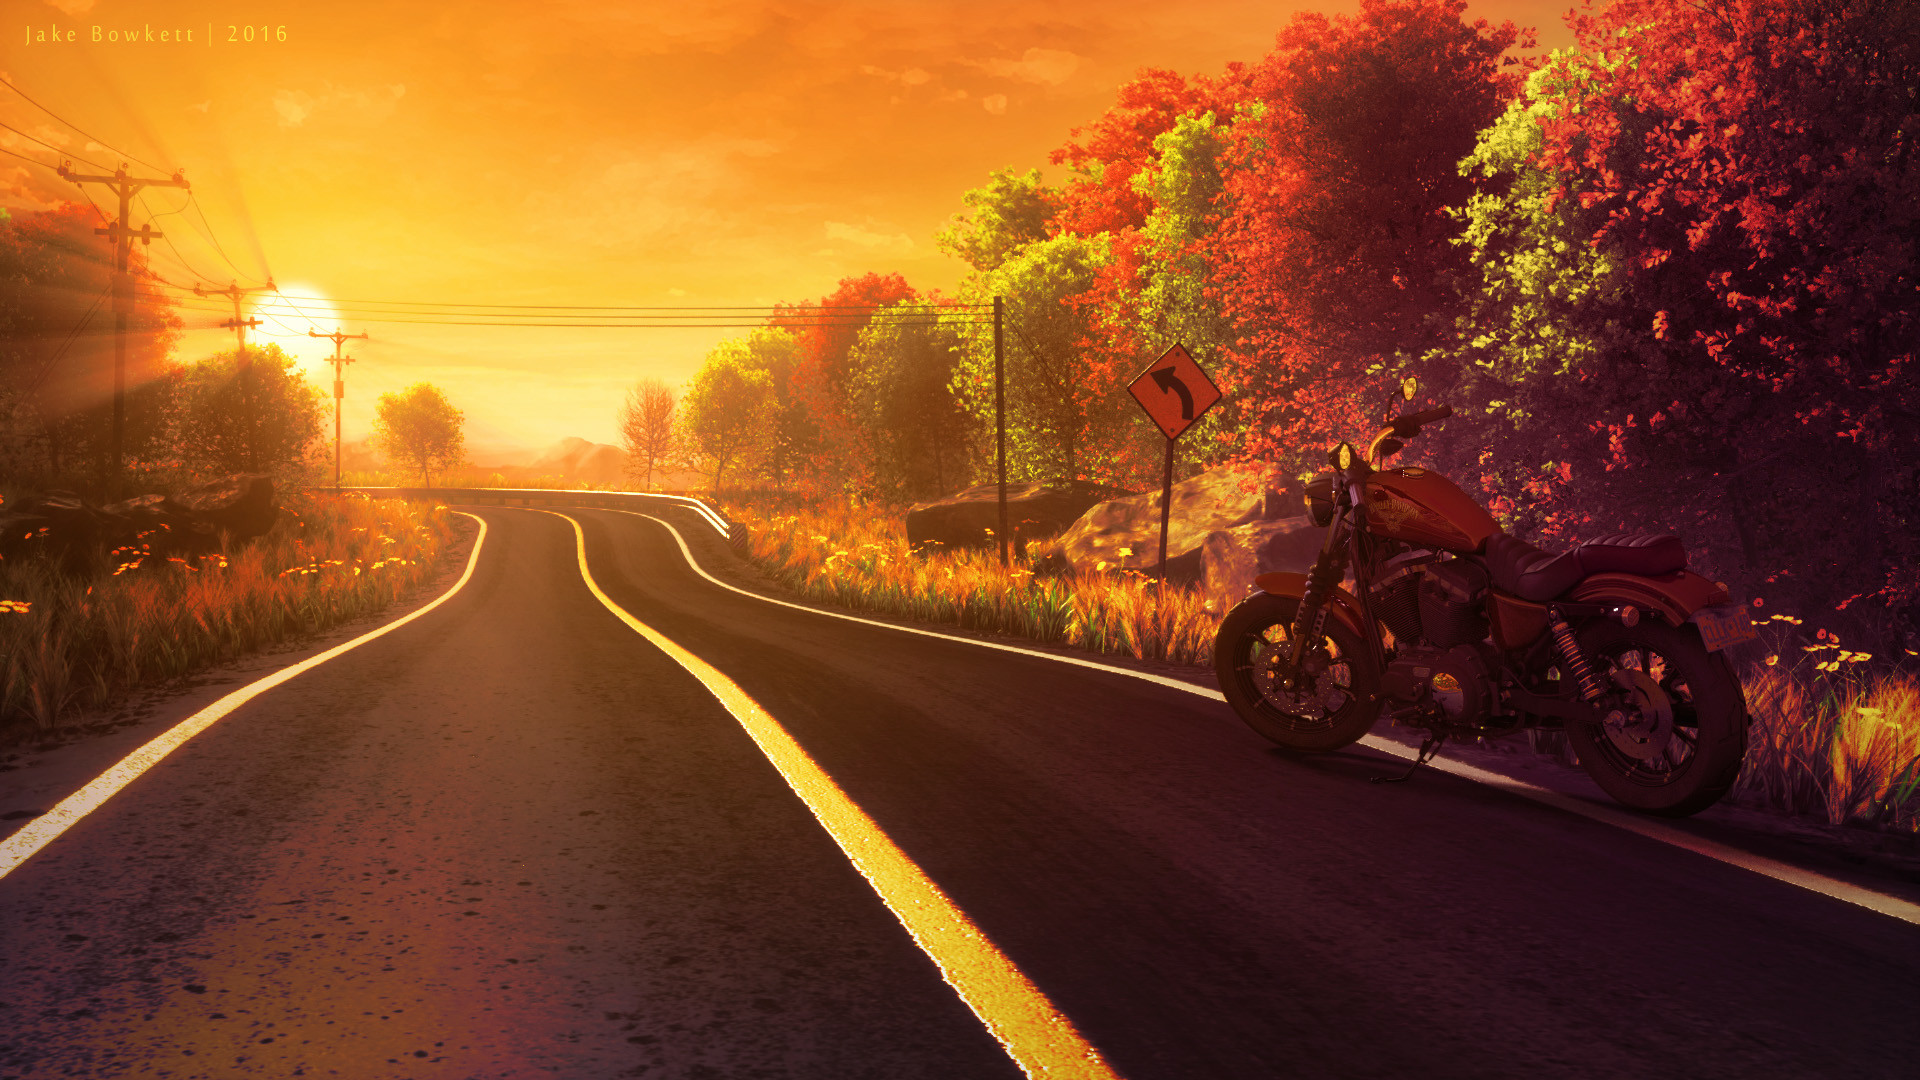 Res: 1920x1080, Country Road with Harley by JakeBowkett Country Road with Harley by  JakeBowkett